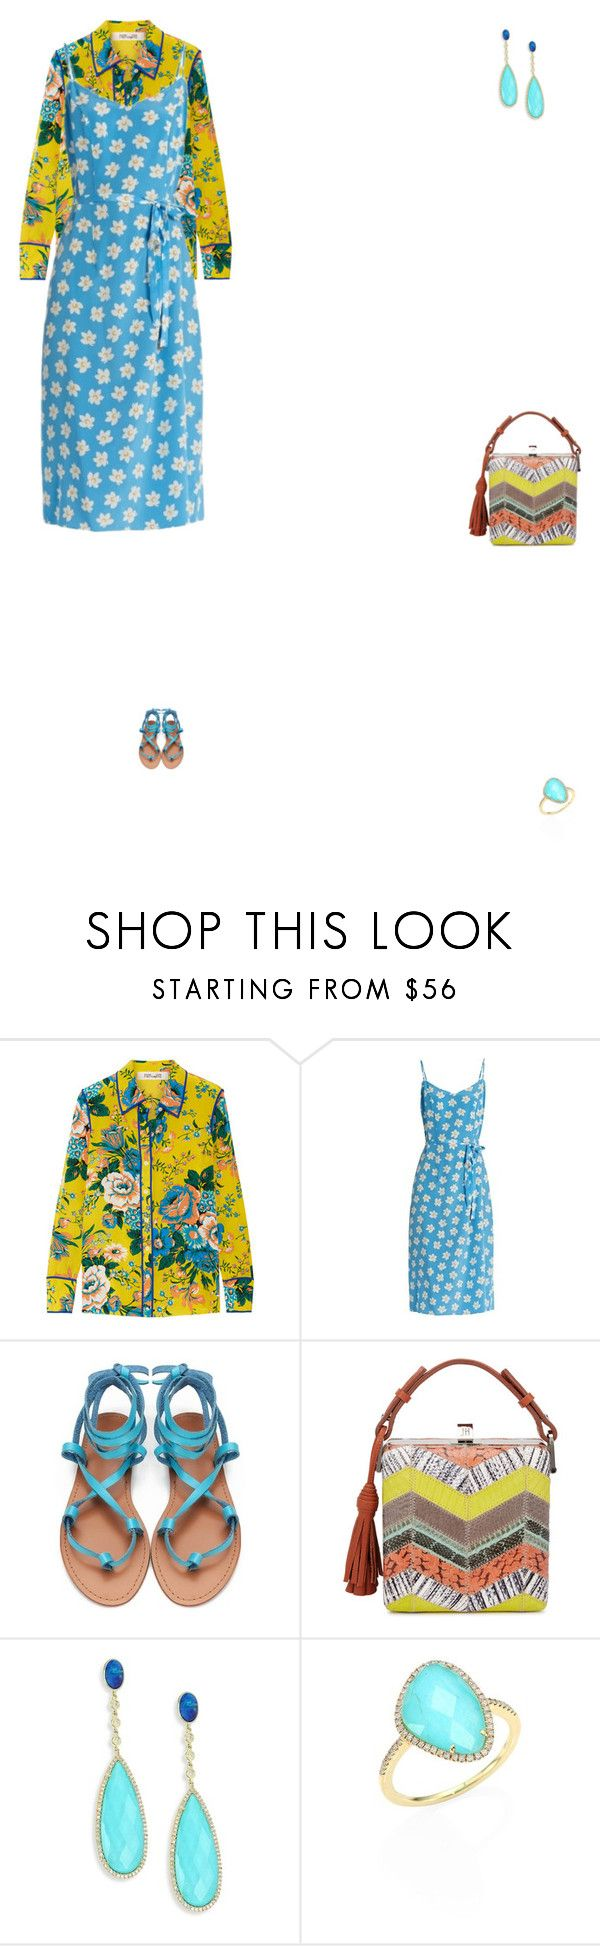 """Grace"" by zoechengrace ❤ liked on Polyvore featuring Diane Von Furstenberg, HVN, Jill Haber and Meira T"